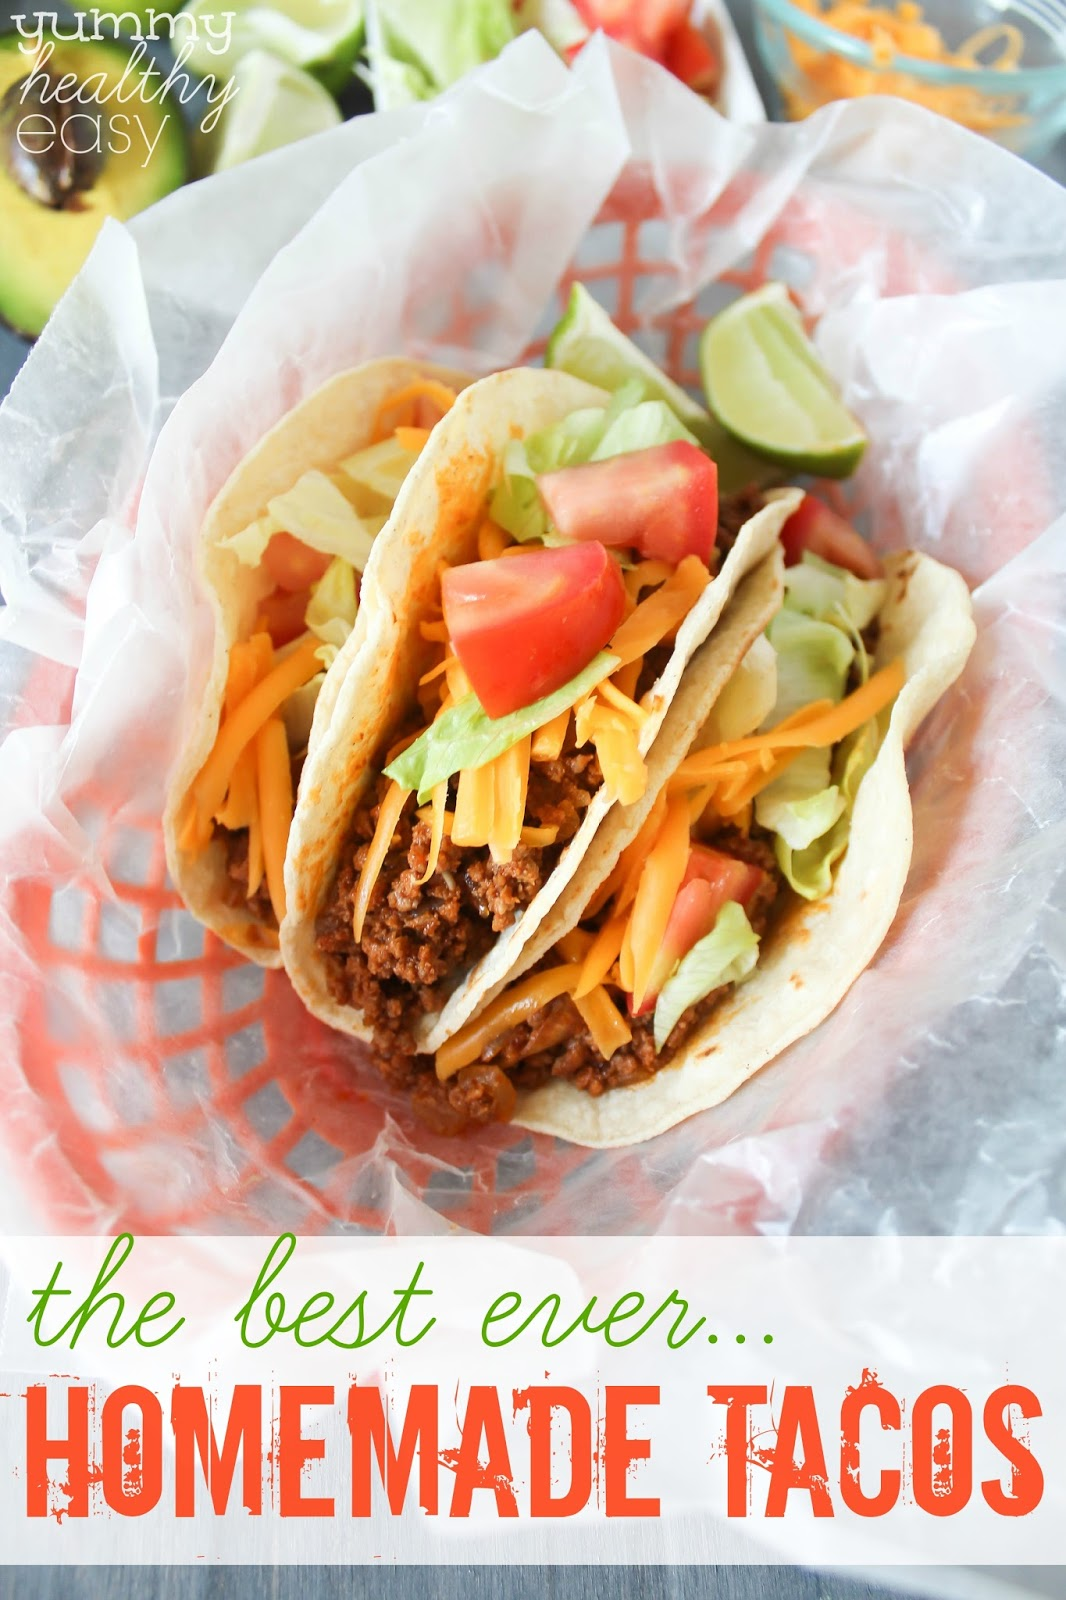 The Best Homemade Tacos Yummy Healthy Easy